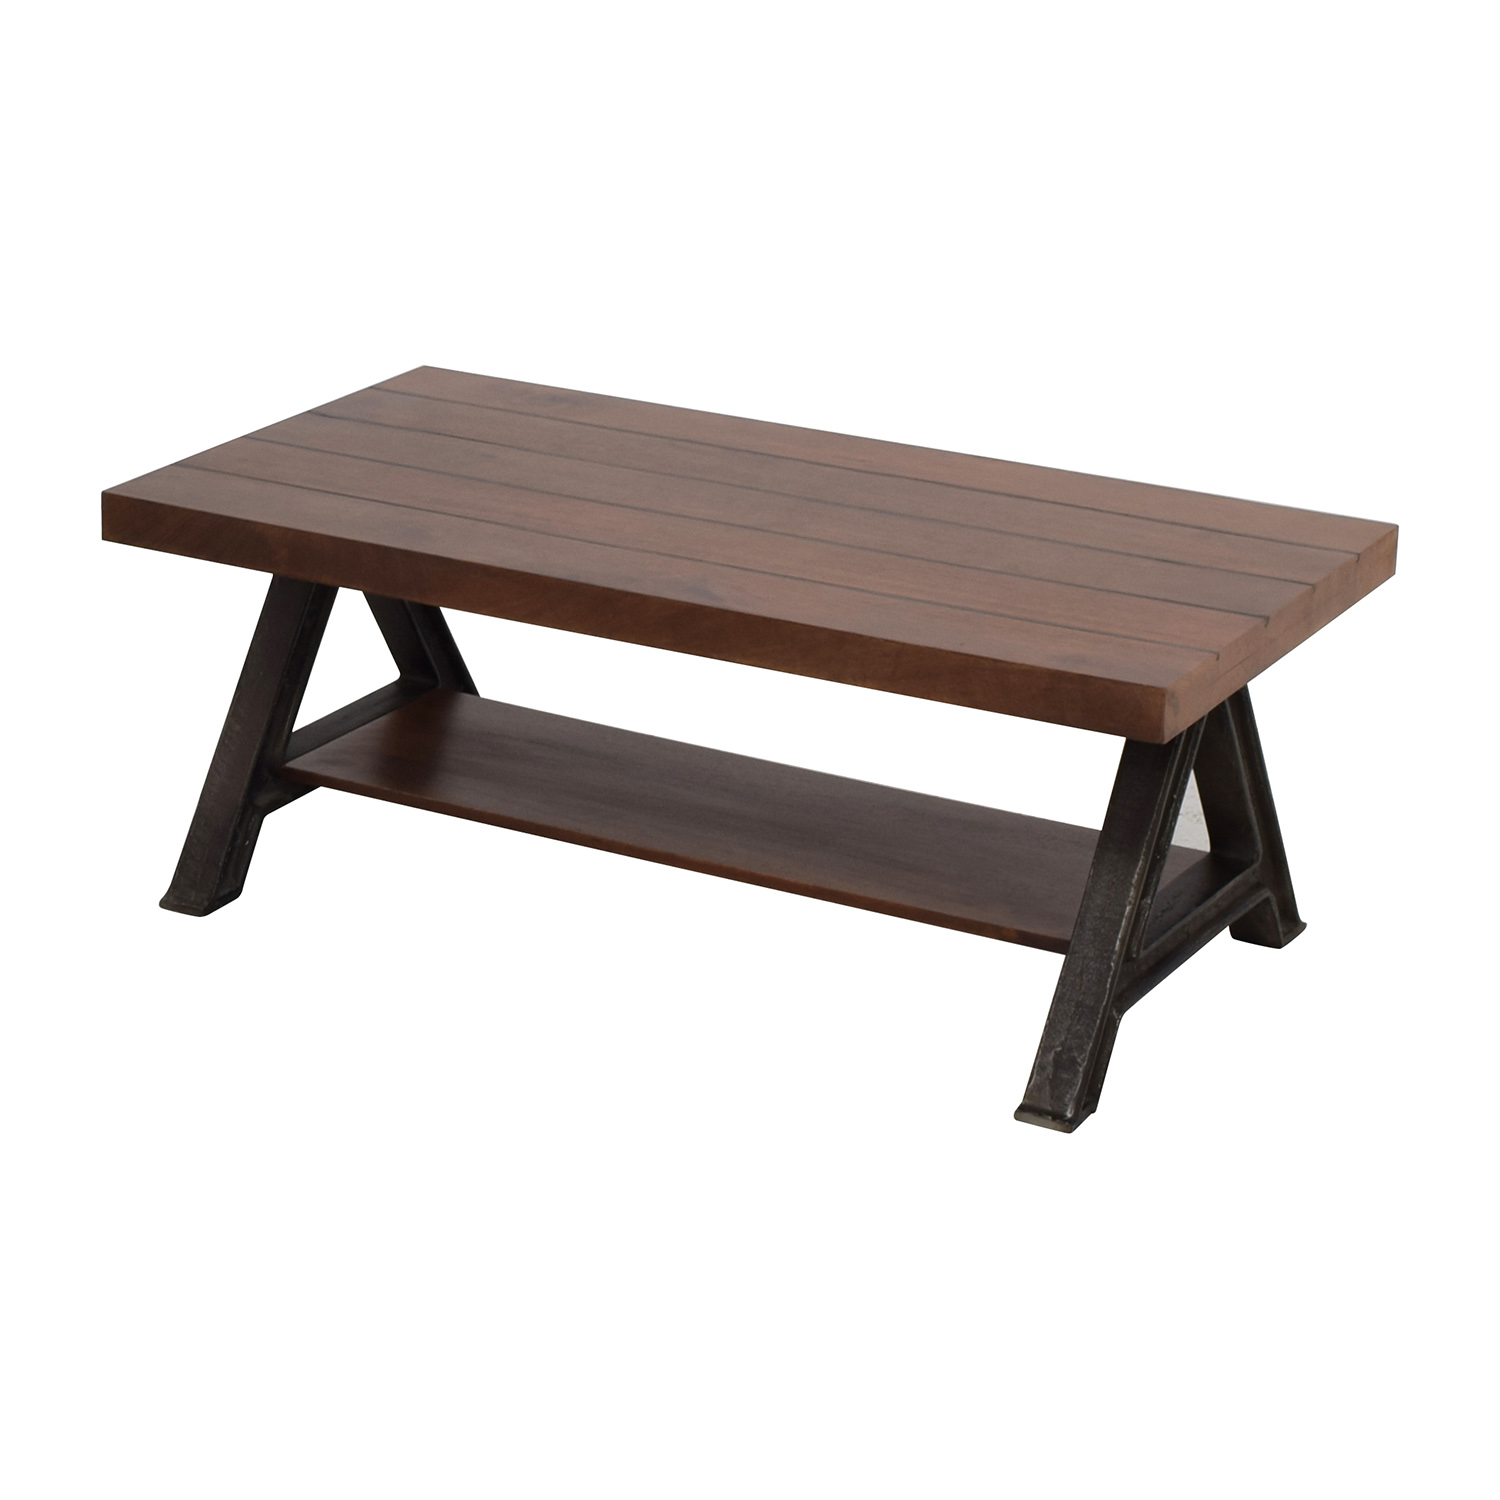 60 Off West Elm West Elm Wood And Metal Coffee Table Tables